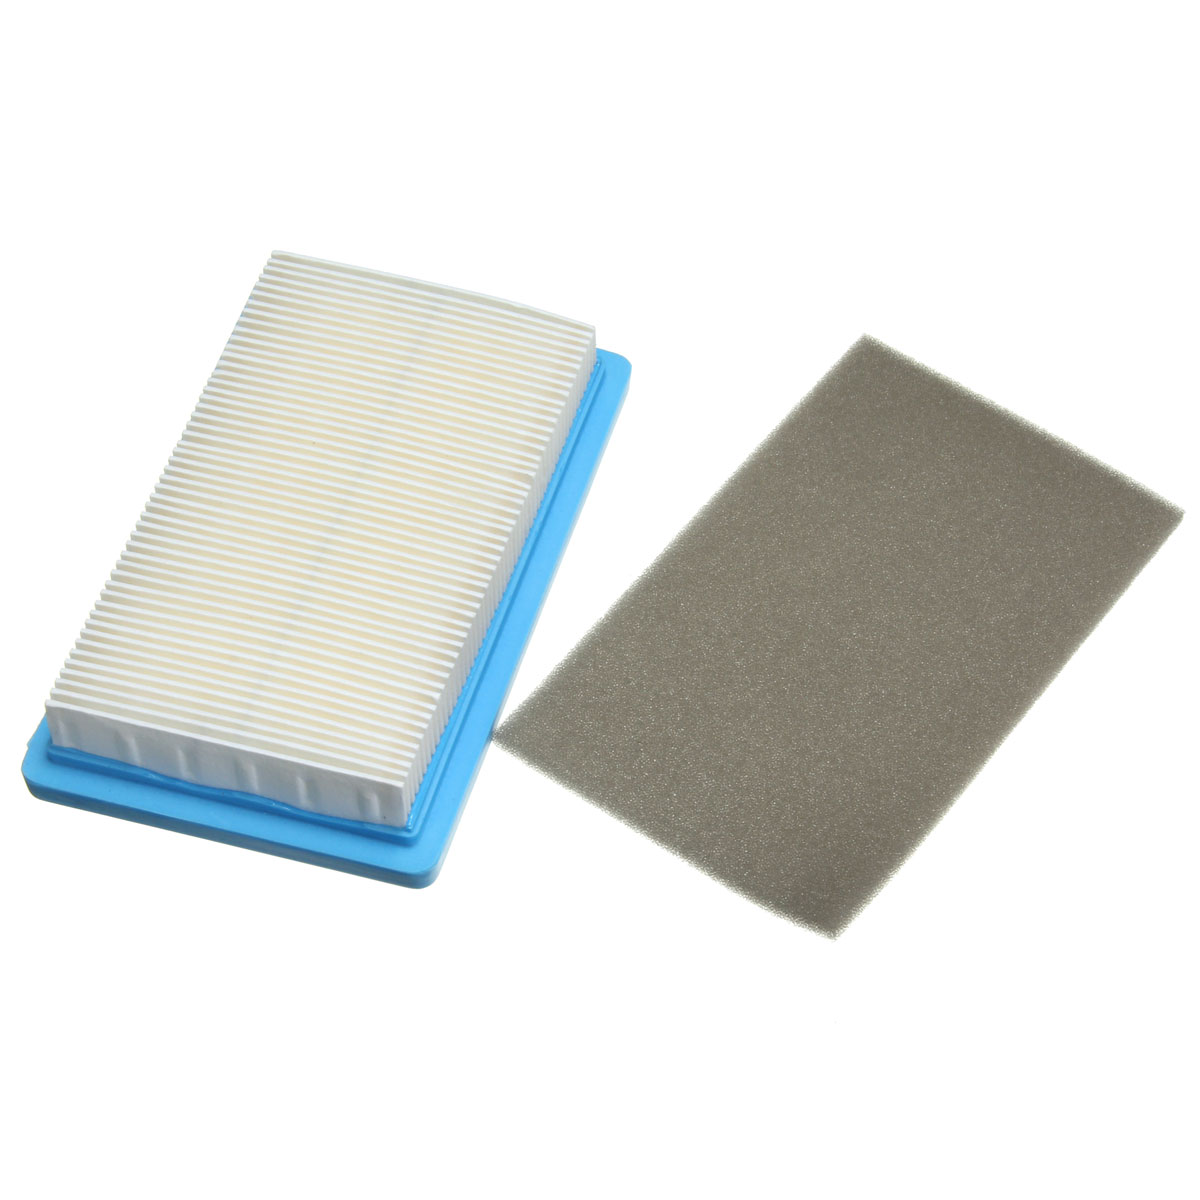 Air Filter Combo For Honda GXV140 KOHLER XT6 XT149 XT173 Cub Cadet